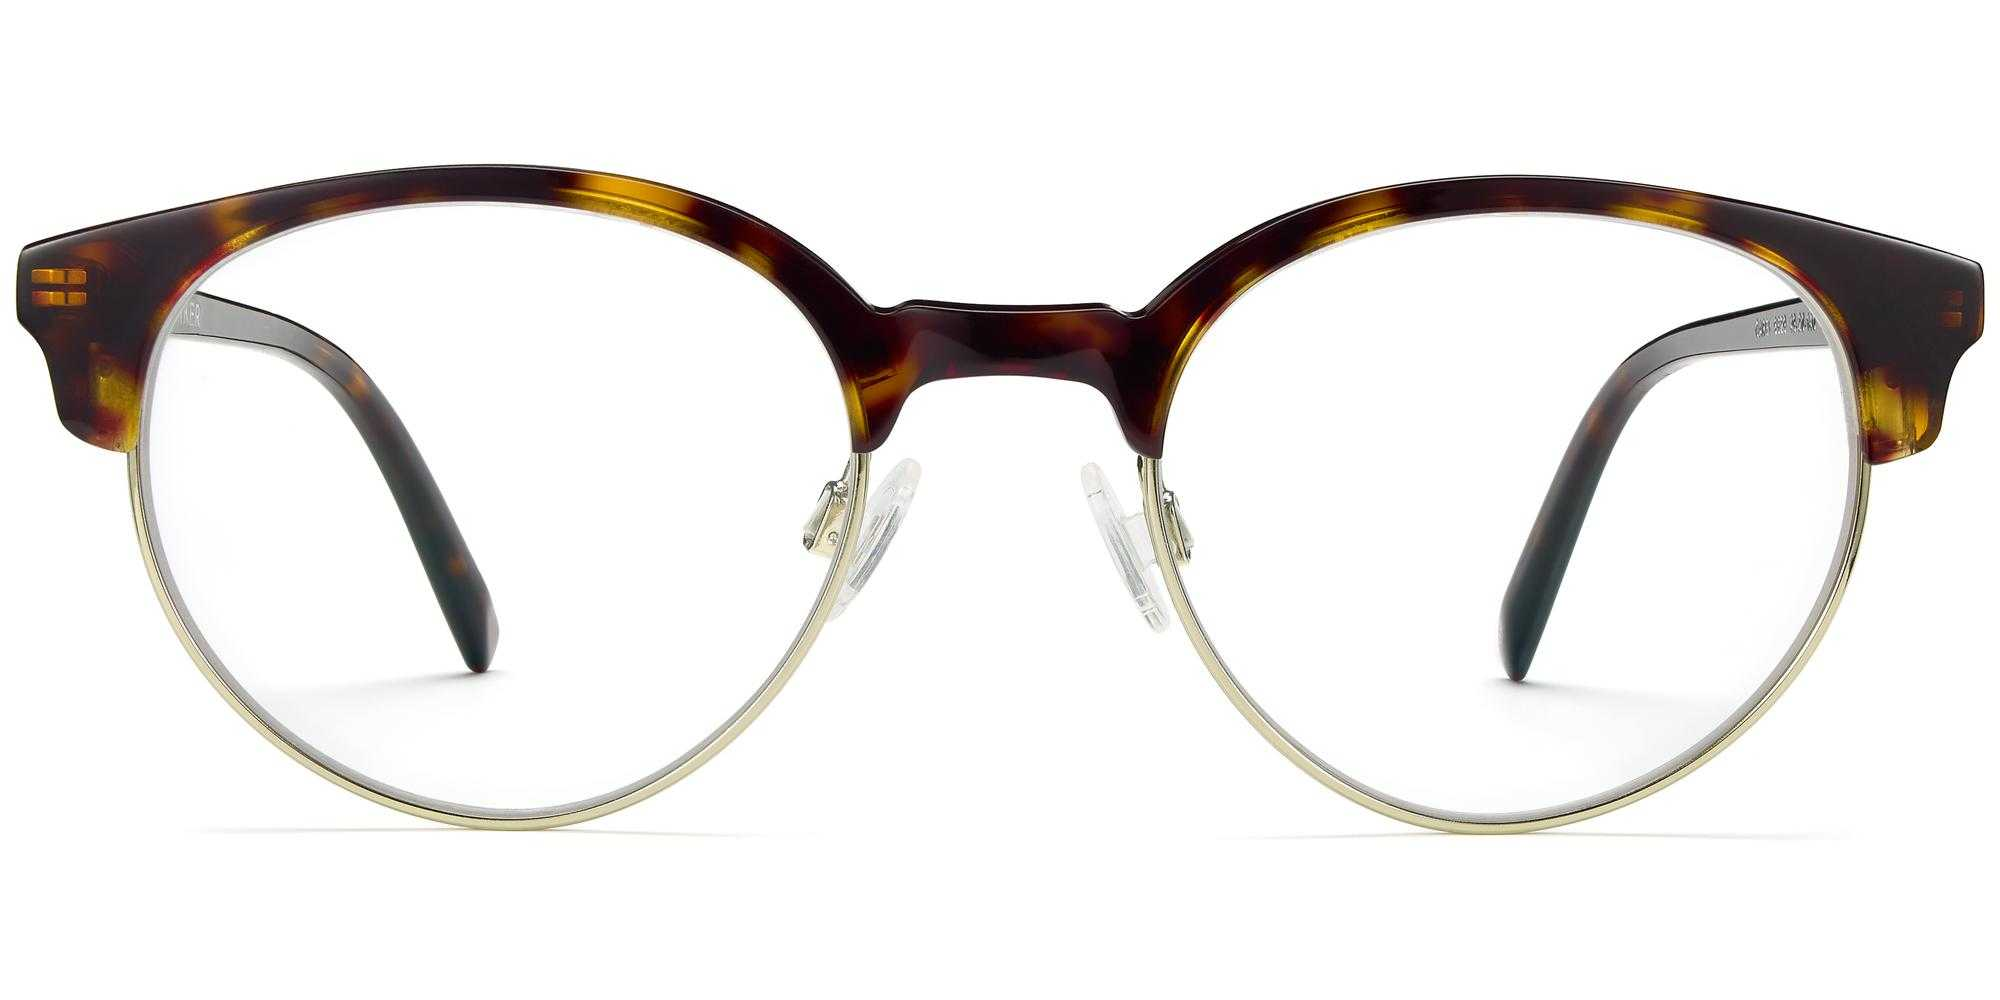 Front View Image of Carey Eyeglasses Collection, by Warby Parker Brand, in Cognac Tortoise with Riesling Color